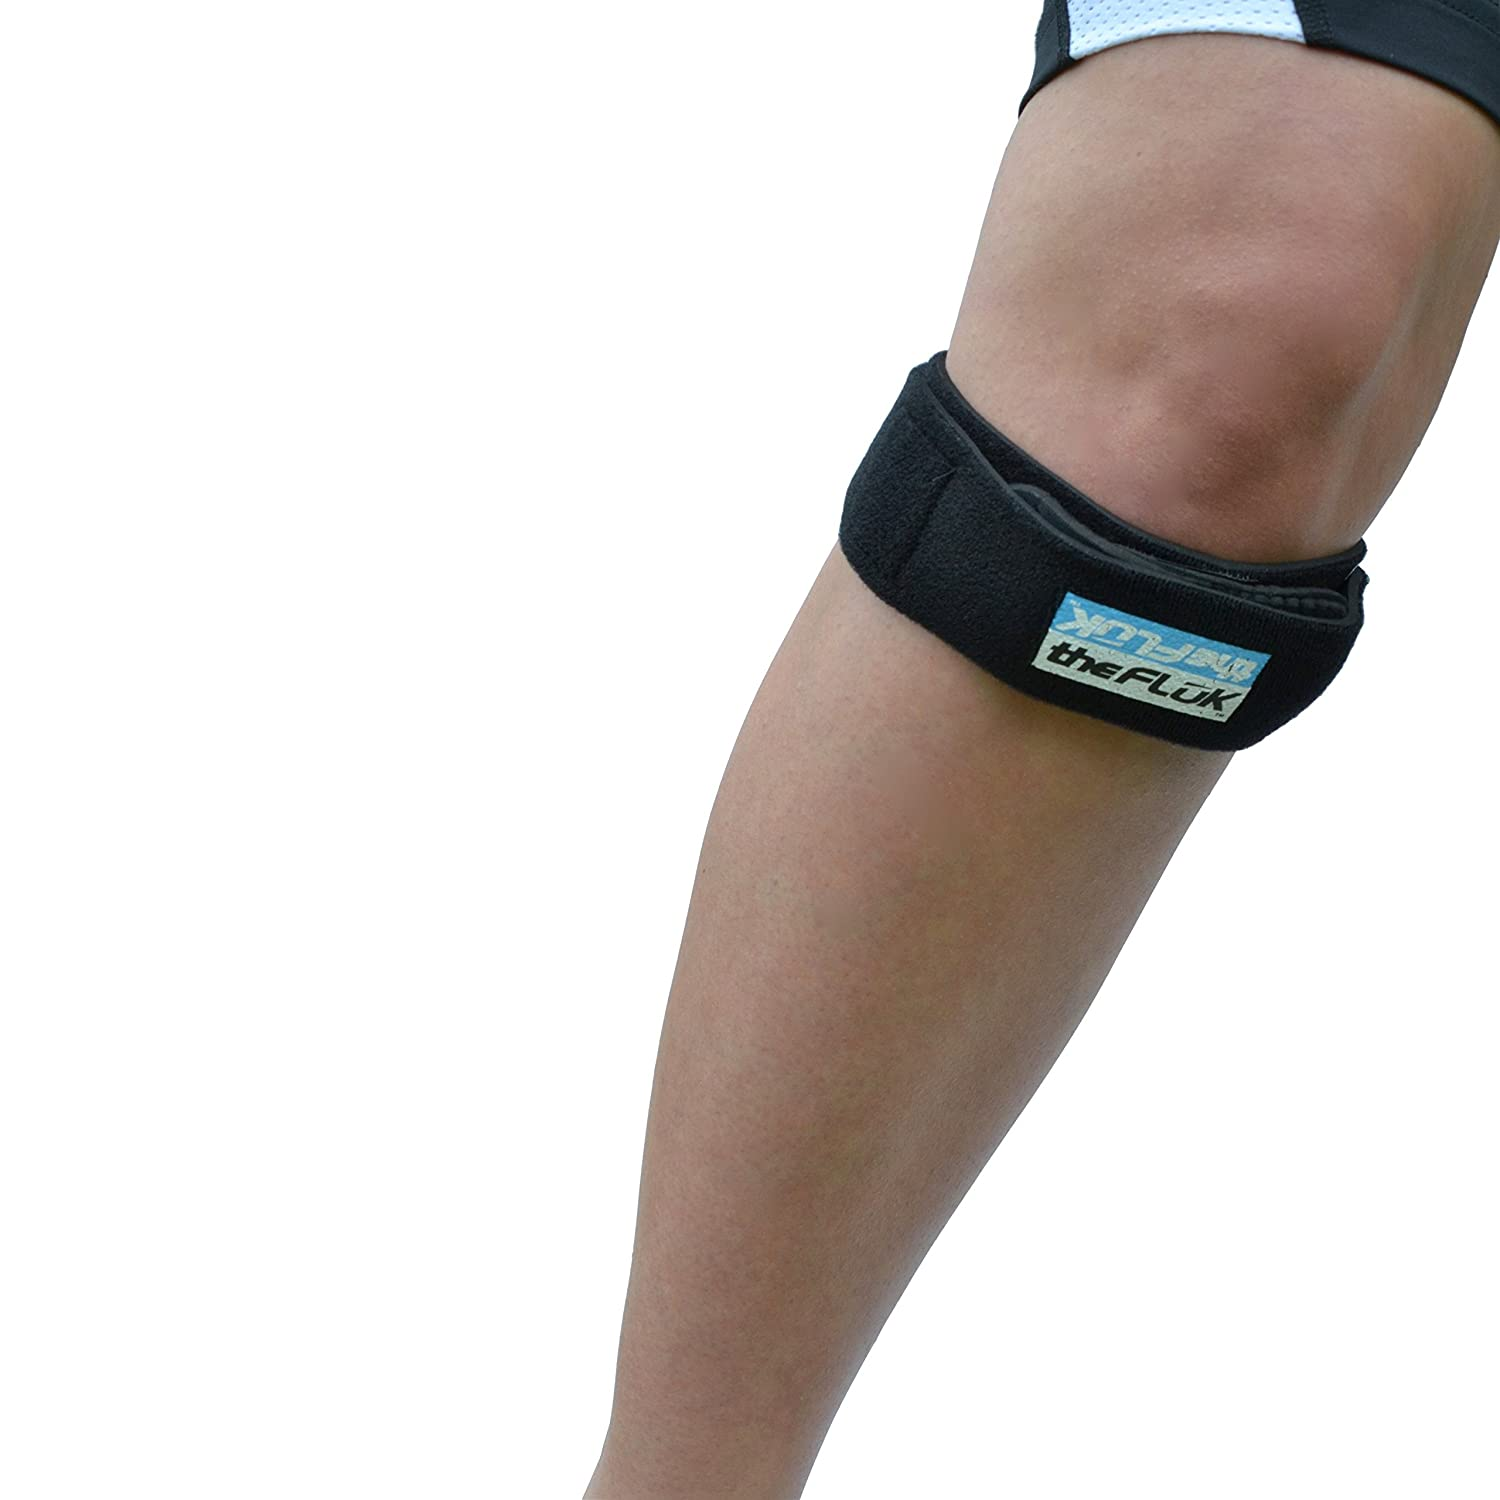 a09d30b9a2 Amazon.com: The Fluk Premium Adjustable Knee Strap, Knee Pain Relief,  Patella Stabilizer Knee Strap Brace Support For Hiking, Soccer, Basketball,  Running, ...